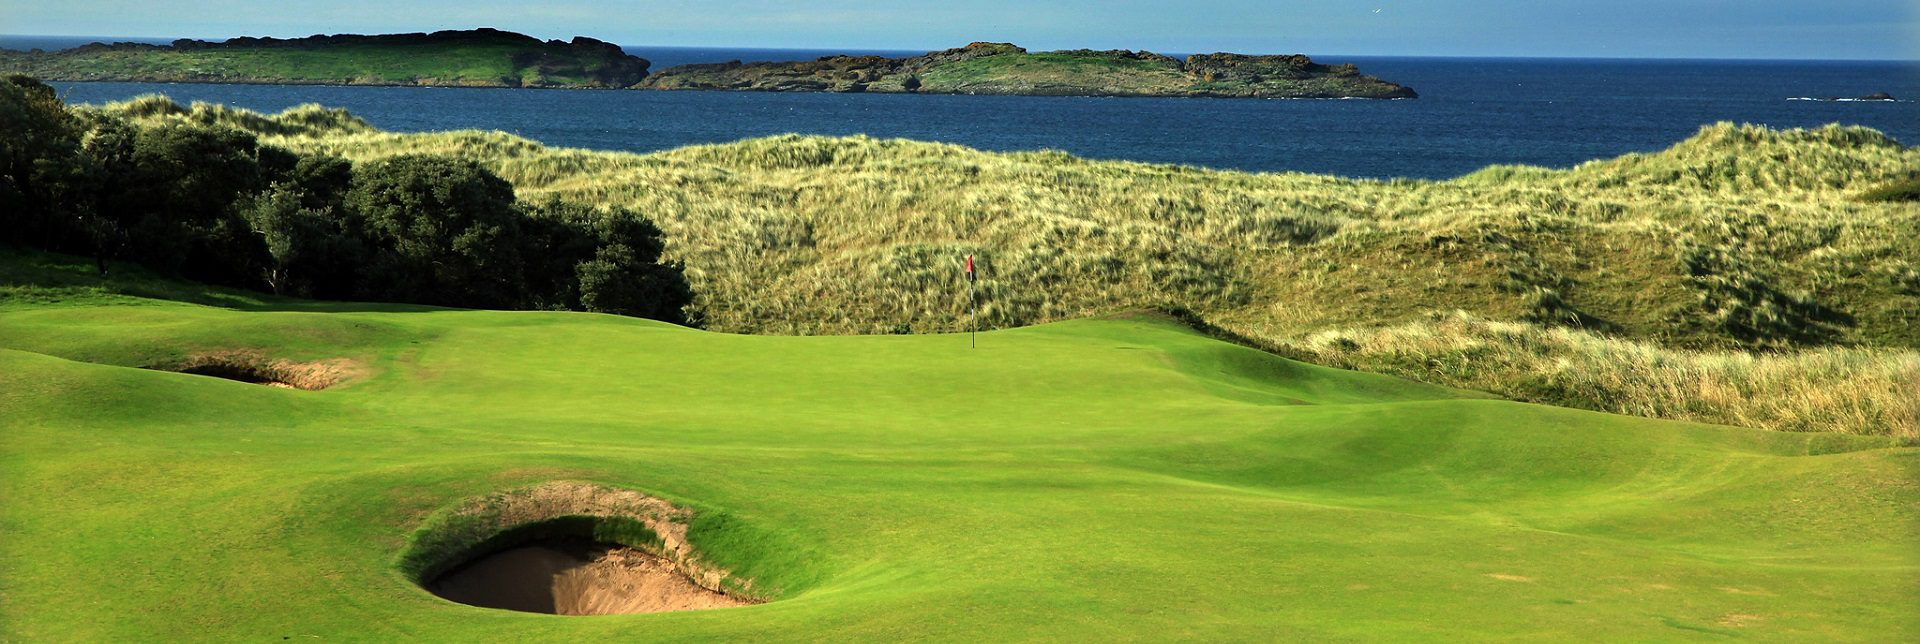 The Golden Period of Golf in Northern Ireland